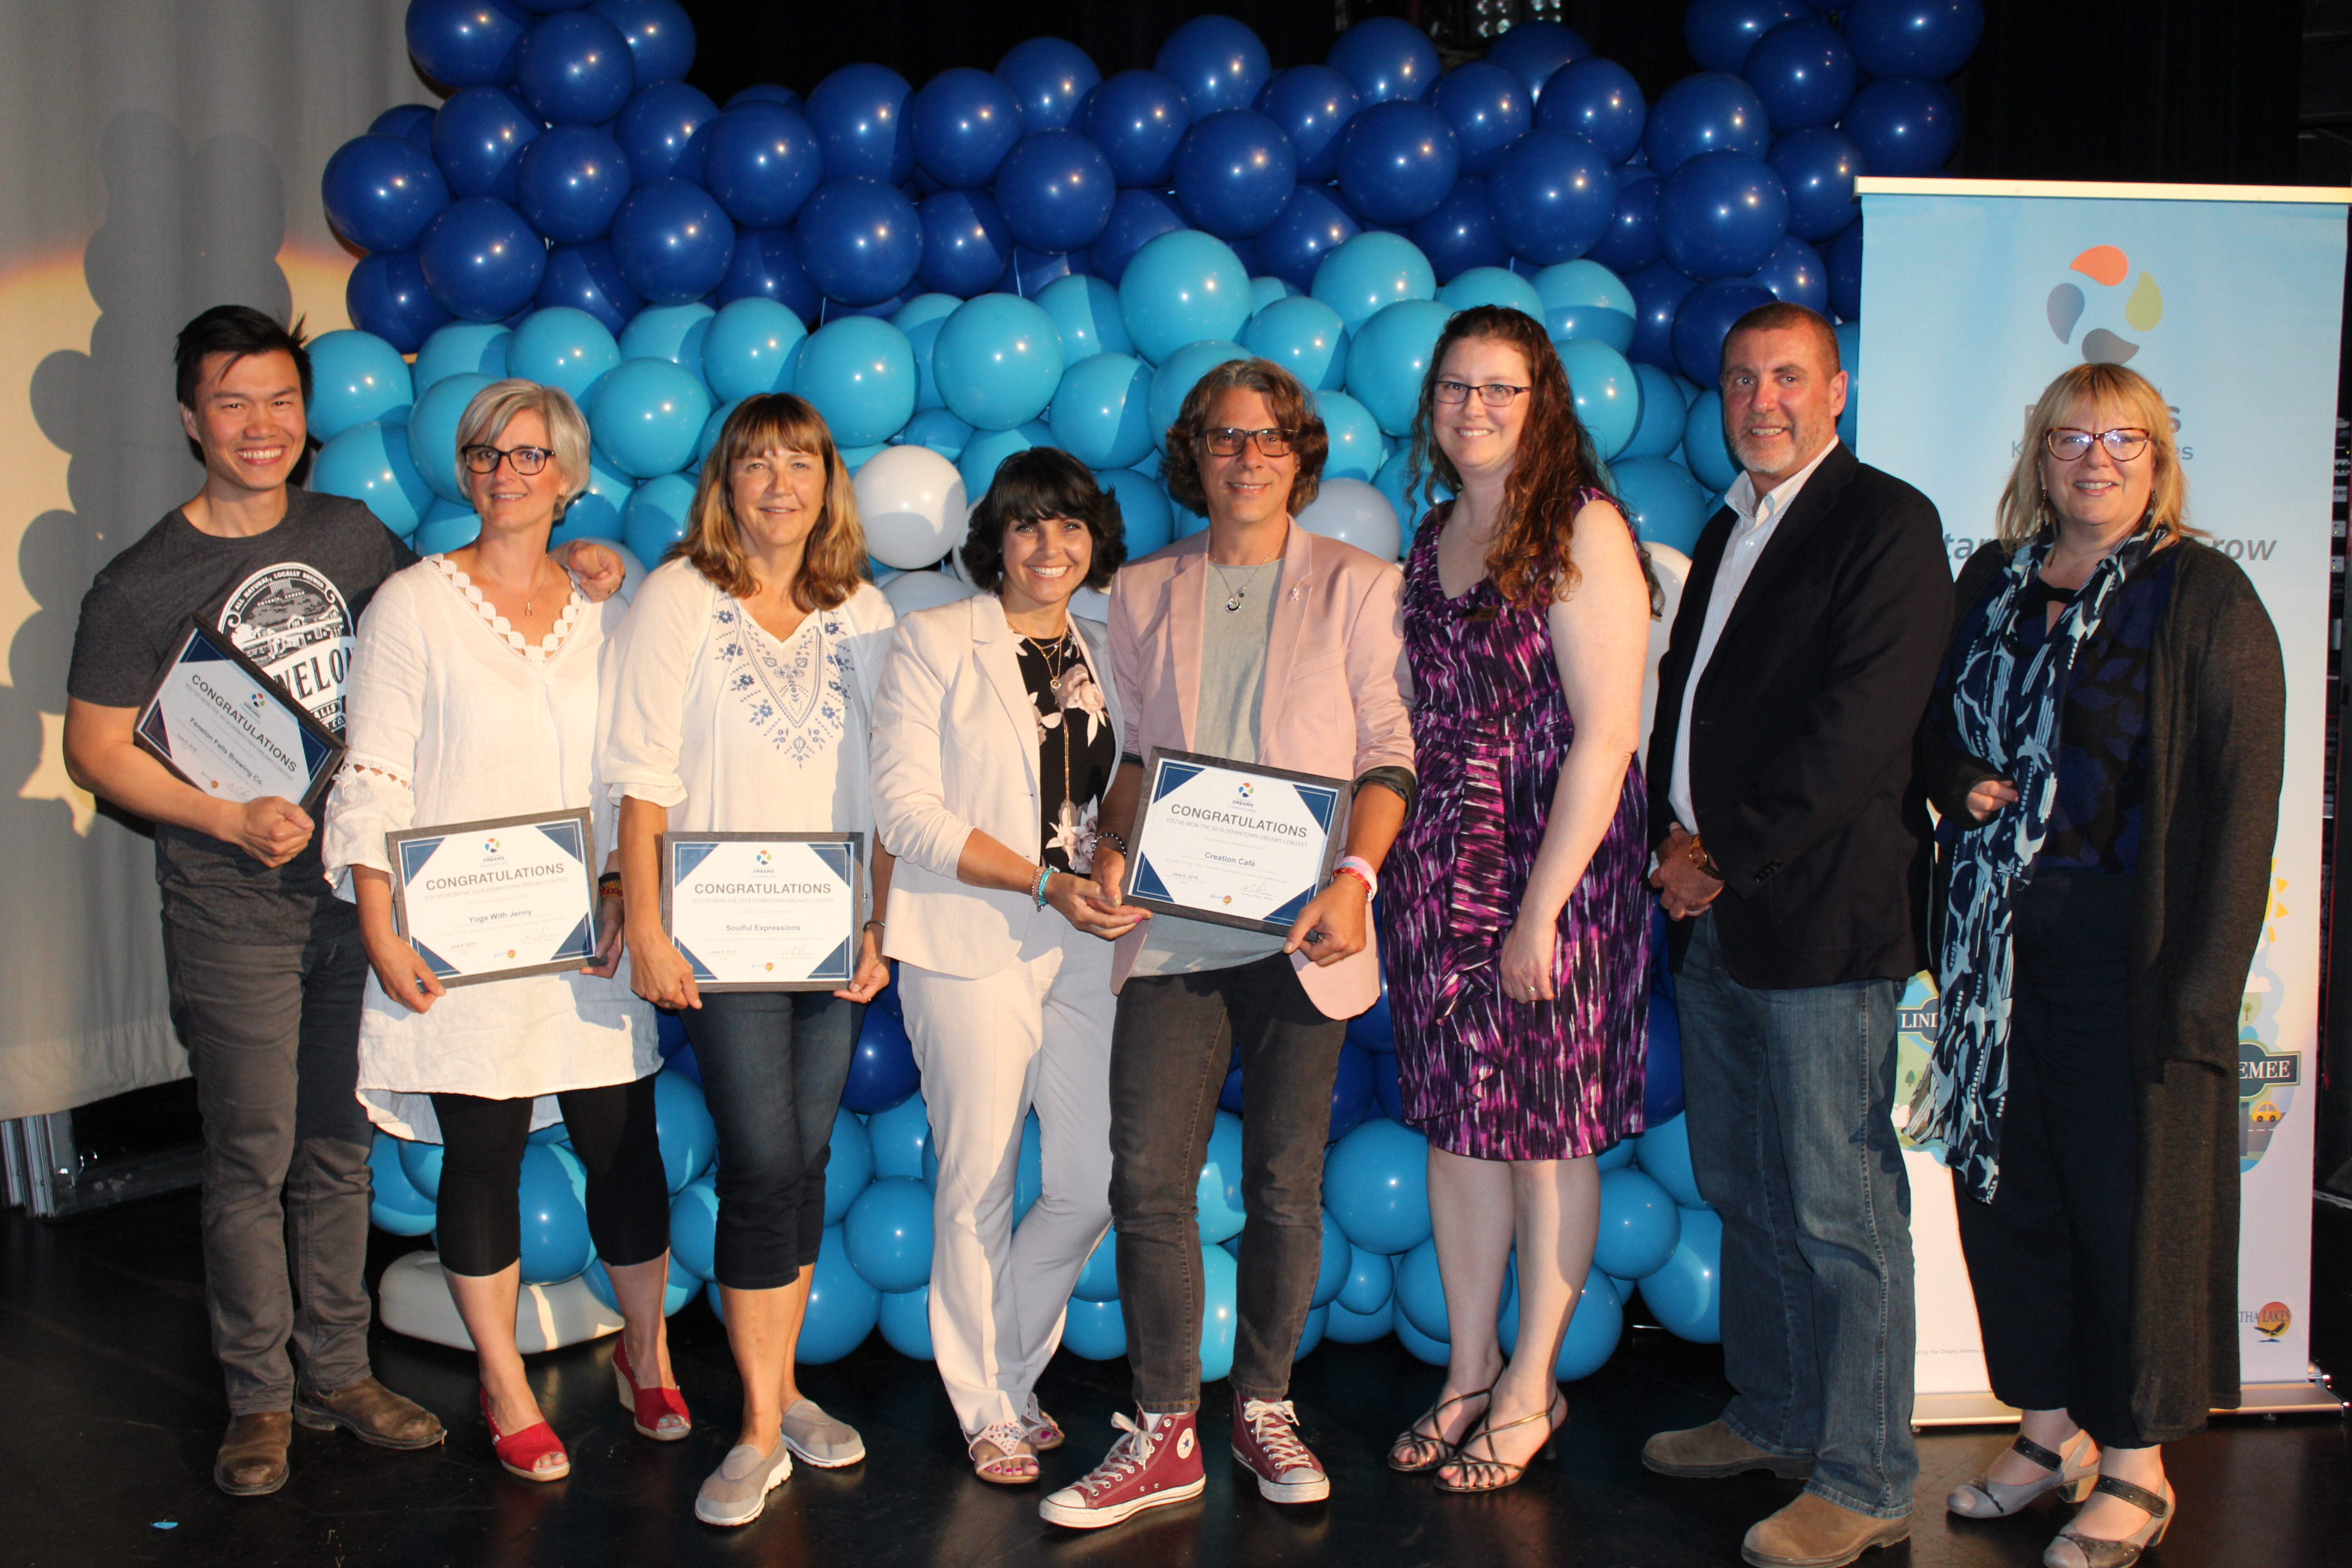 All Downtown Dreams contest finalists with their awards and Mayor Letham